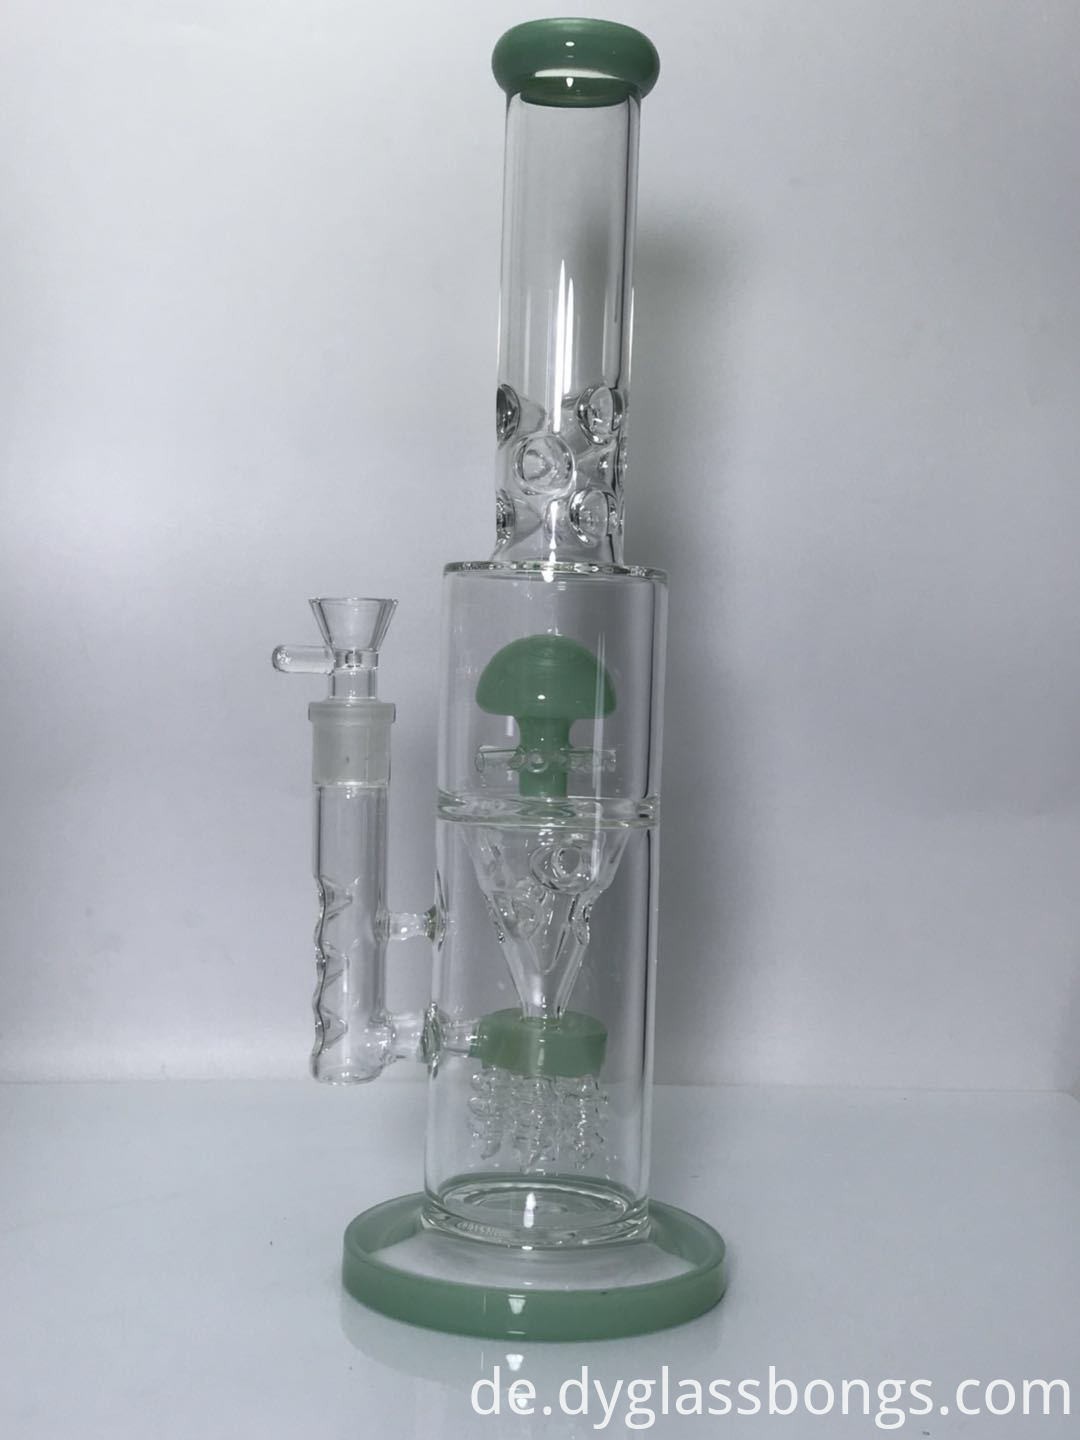 16 inch two bubbler hookahs with 18mm bowl